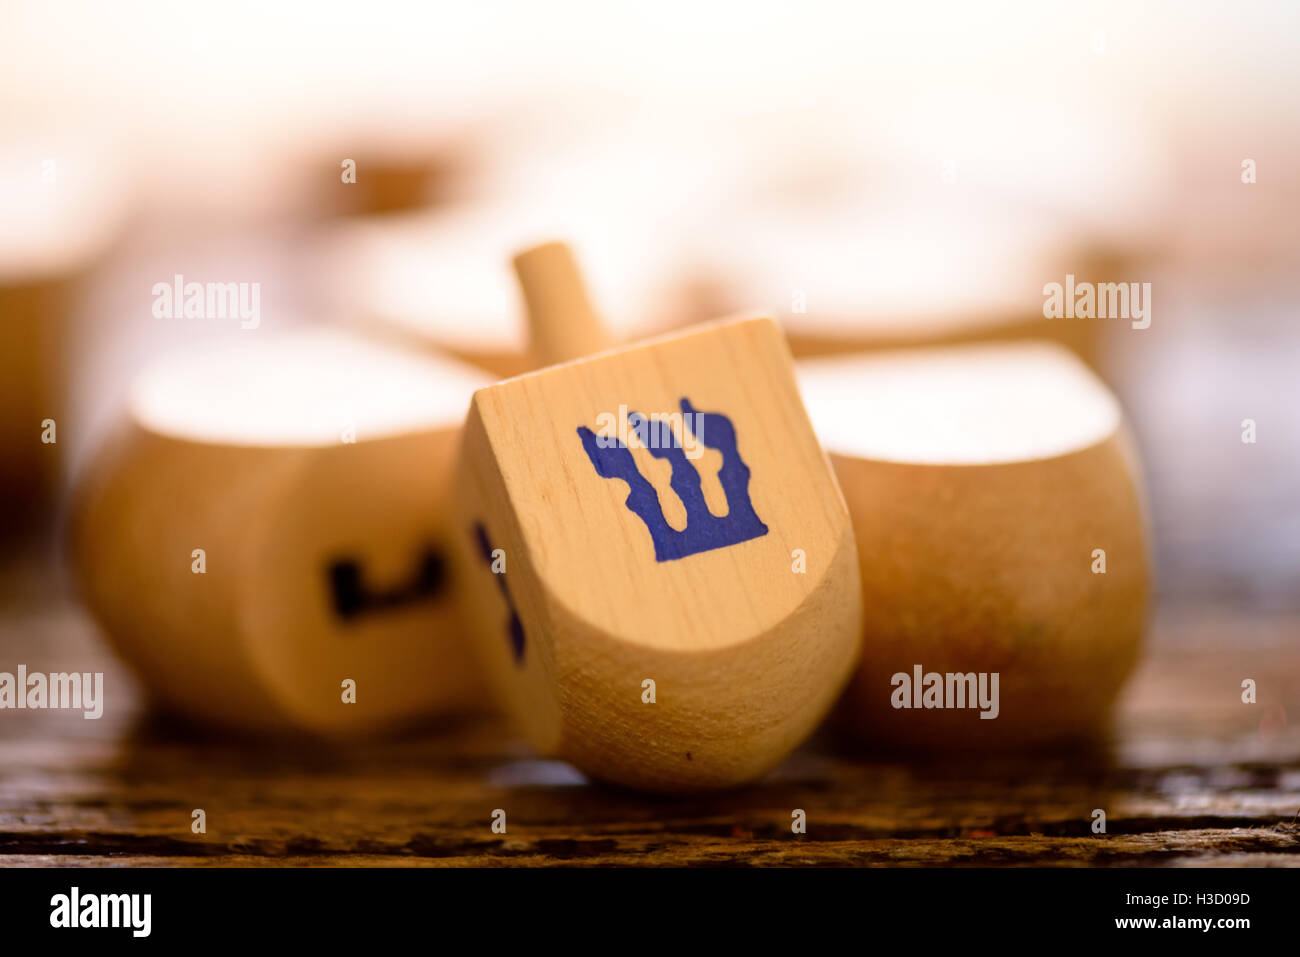 Arrangement of Jewish dreidels for Hanukkah set on rustic wood. - Stock Image